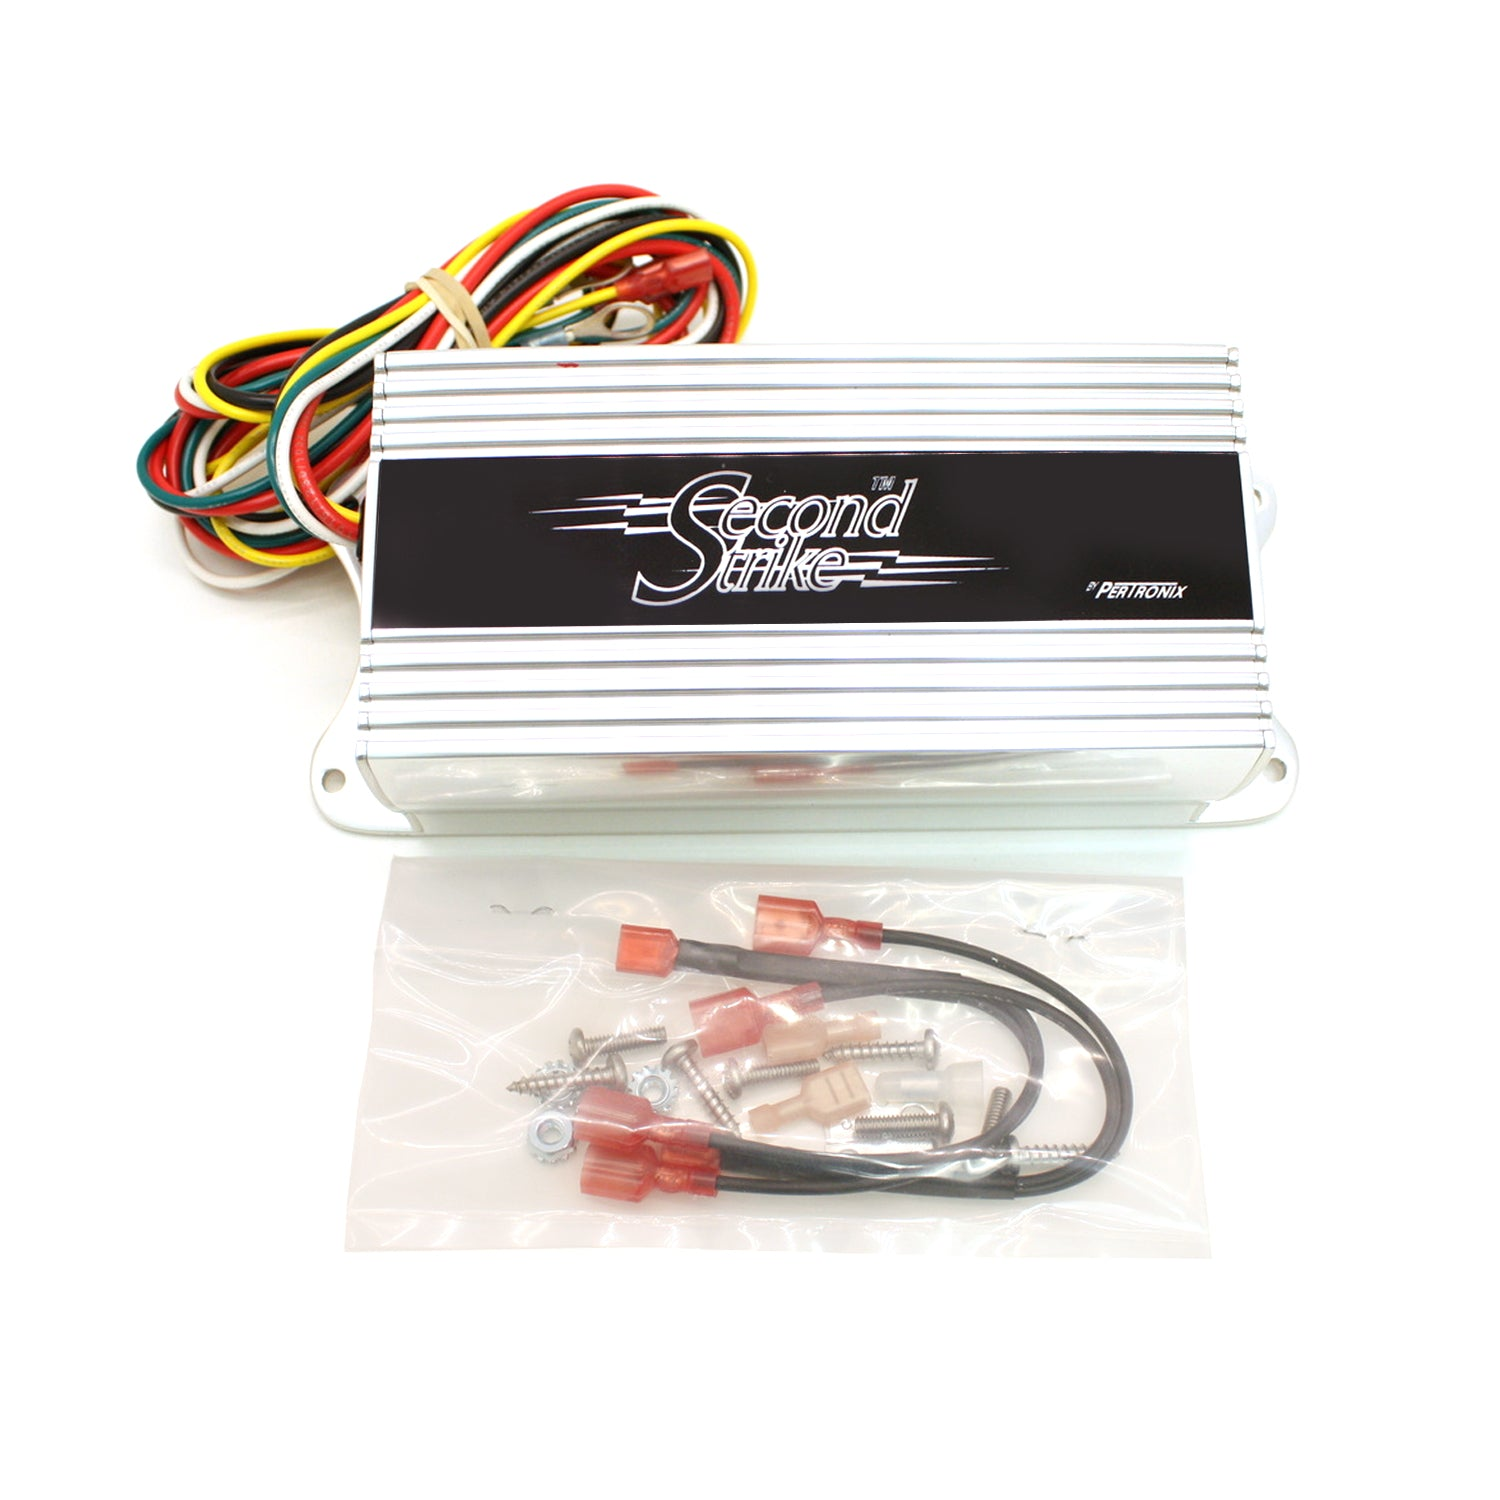 PerTronix 500 Second Strike Igniton Box